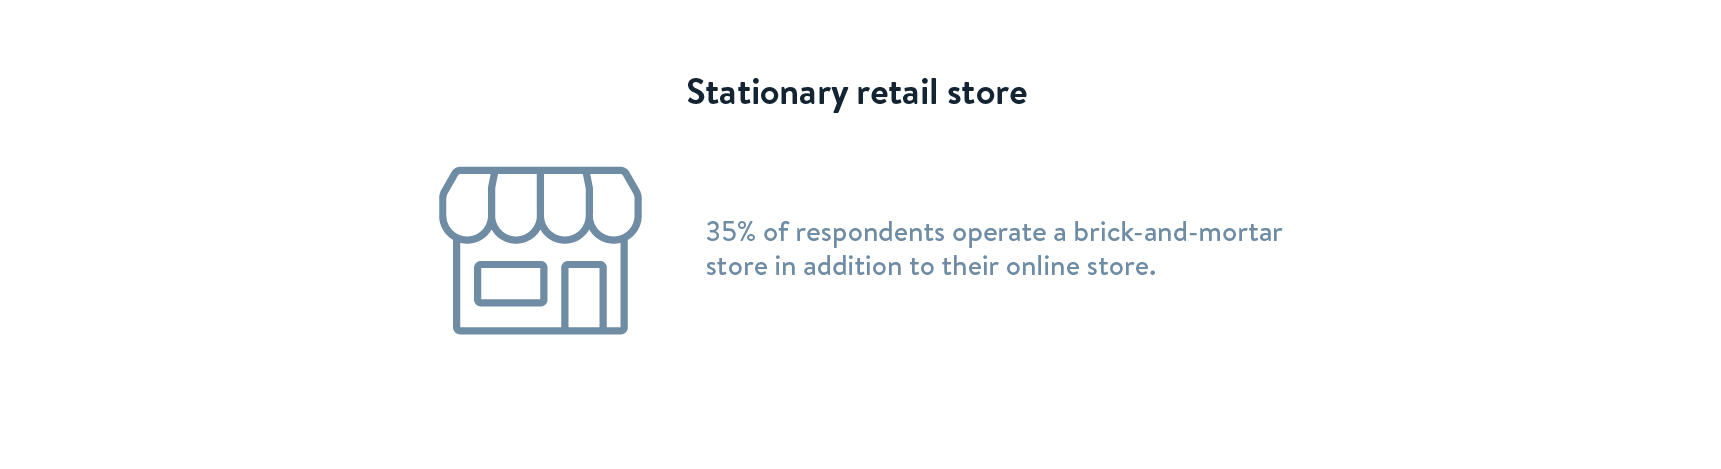 Stationary_retail_store_2020